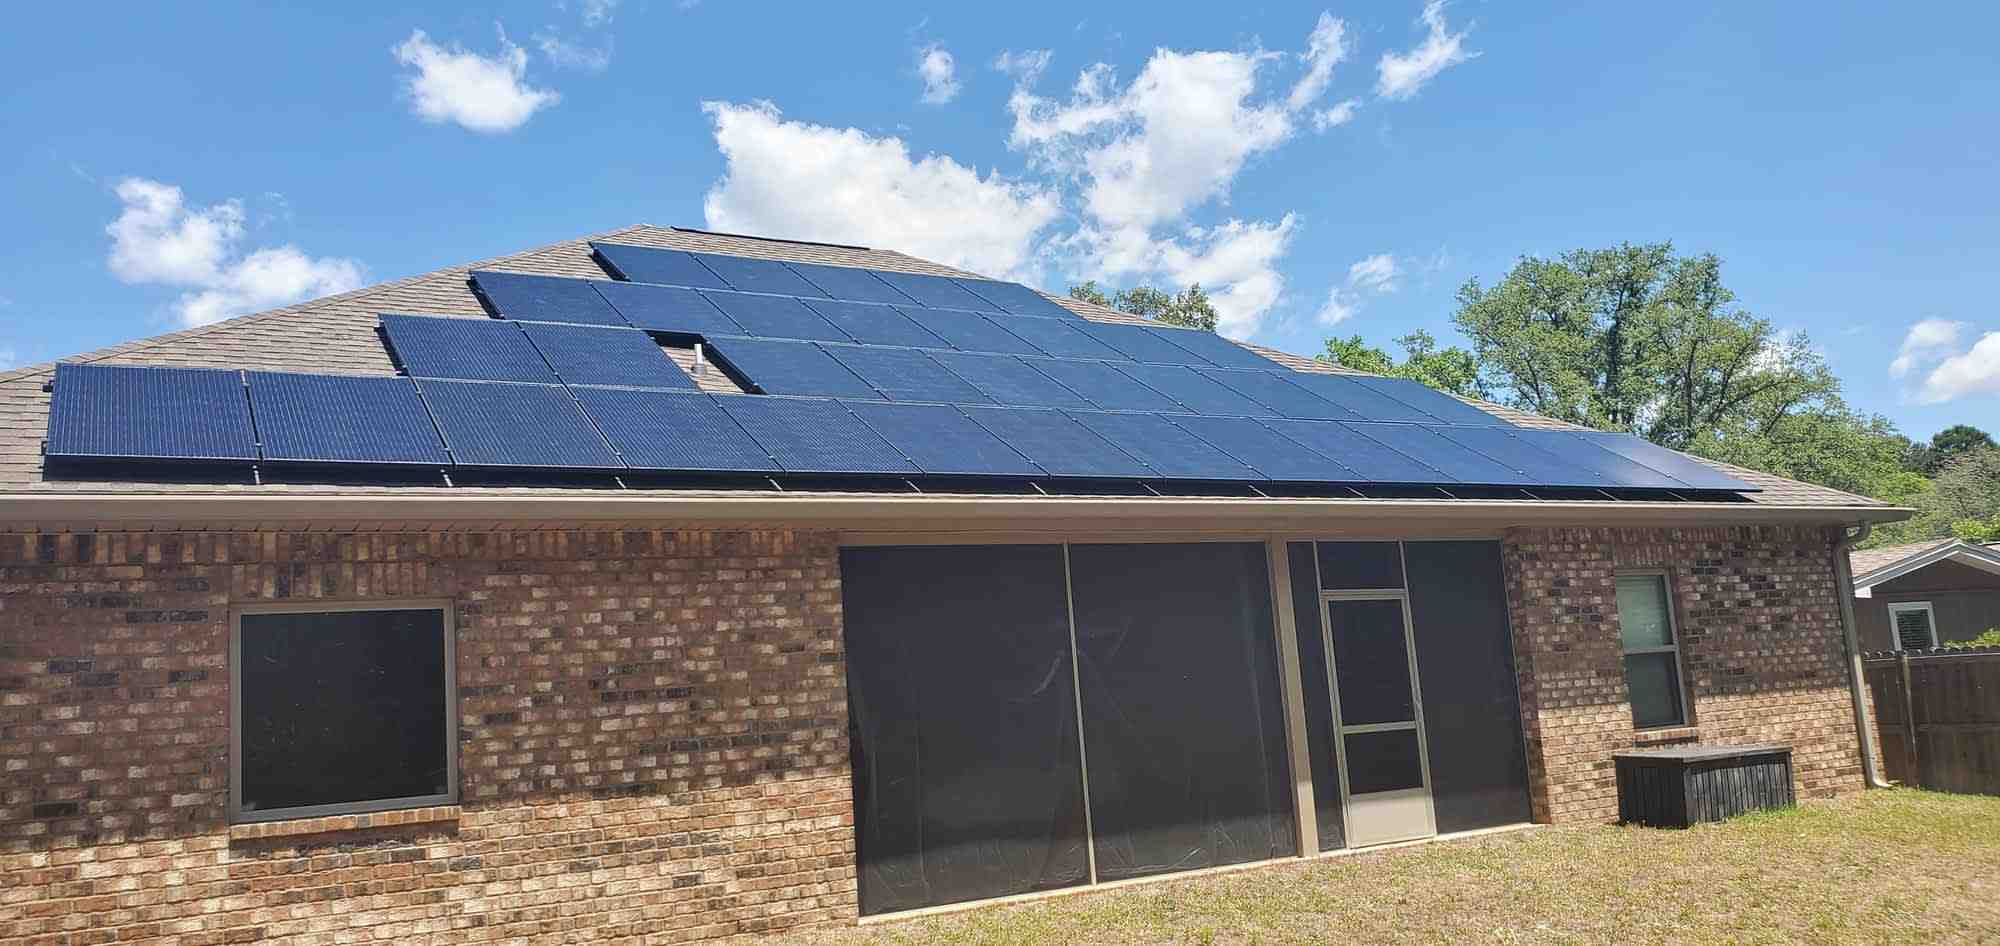 How much does a source Hydropanel cost?